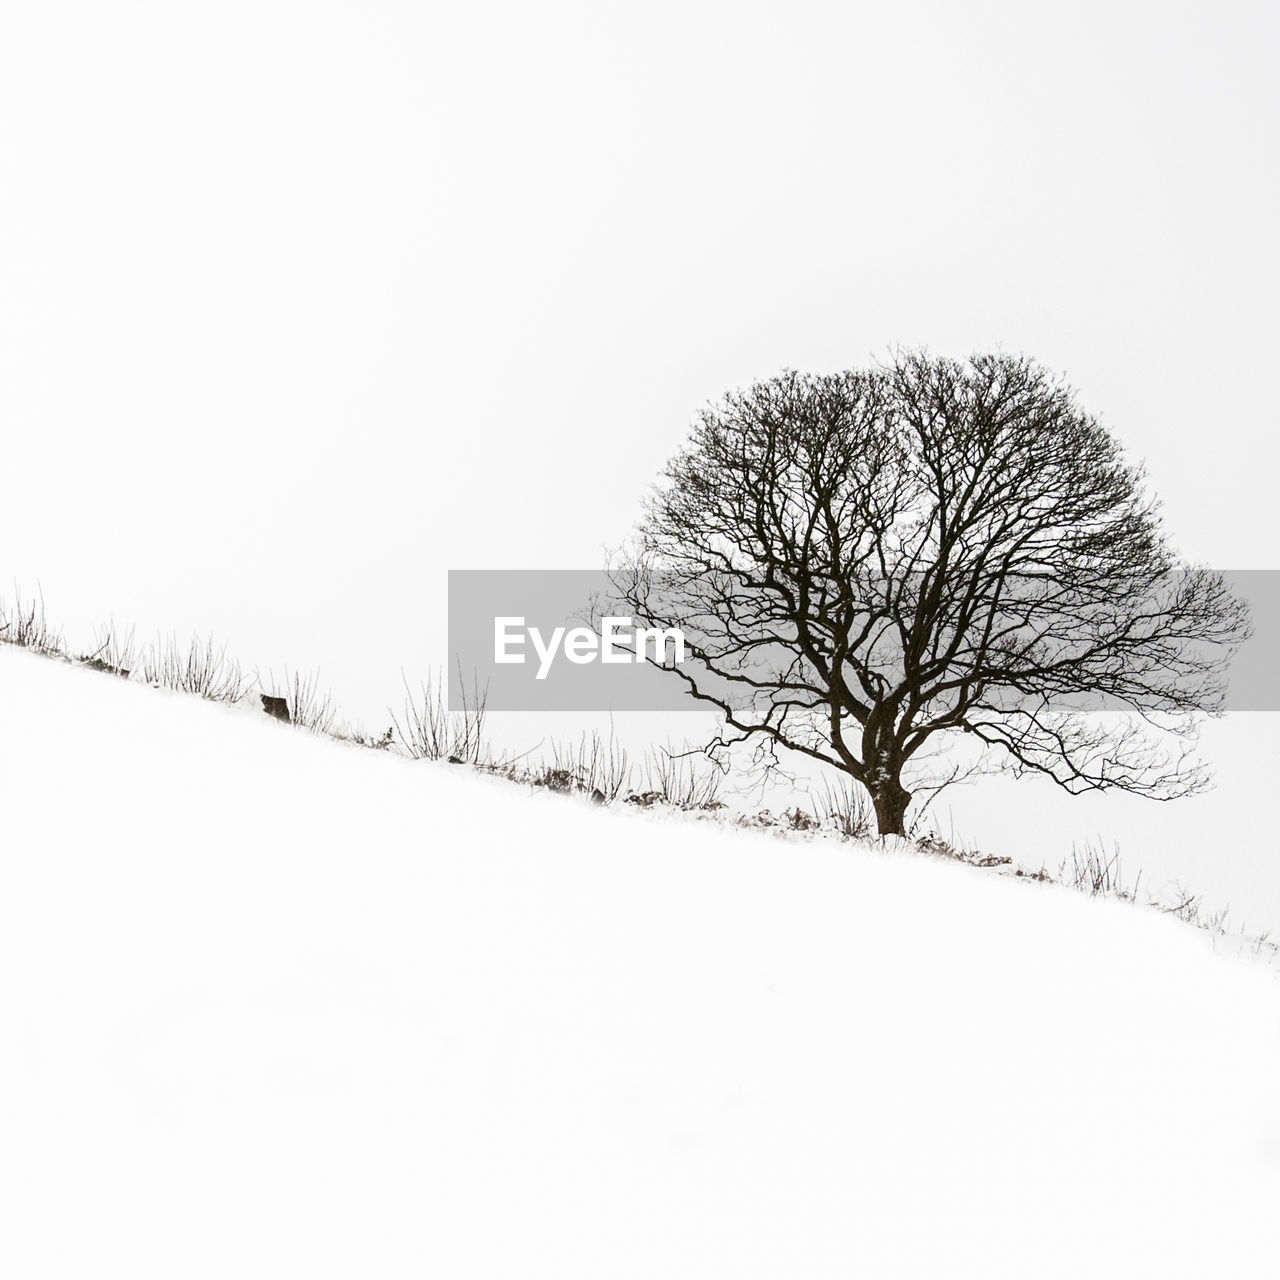 cold temperature, snow, winter, tree, bare tree, beauty in nature, tranquility, scenics - nature, plant, sky, tranquil scene, field, no people, clear sky, landscape, environment, non-urban scene, land, white color, outdoors, cold, isolated, snowing